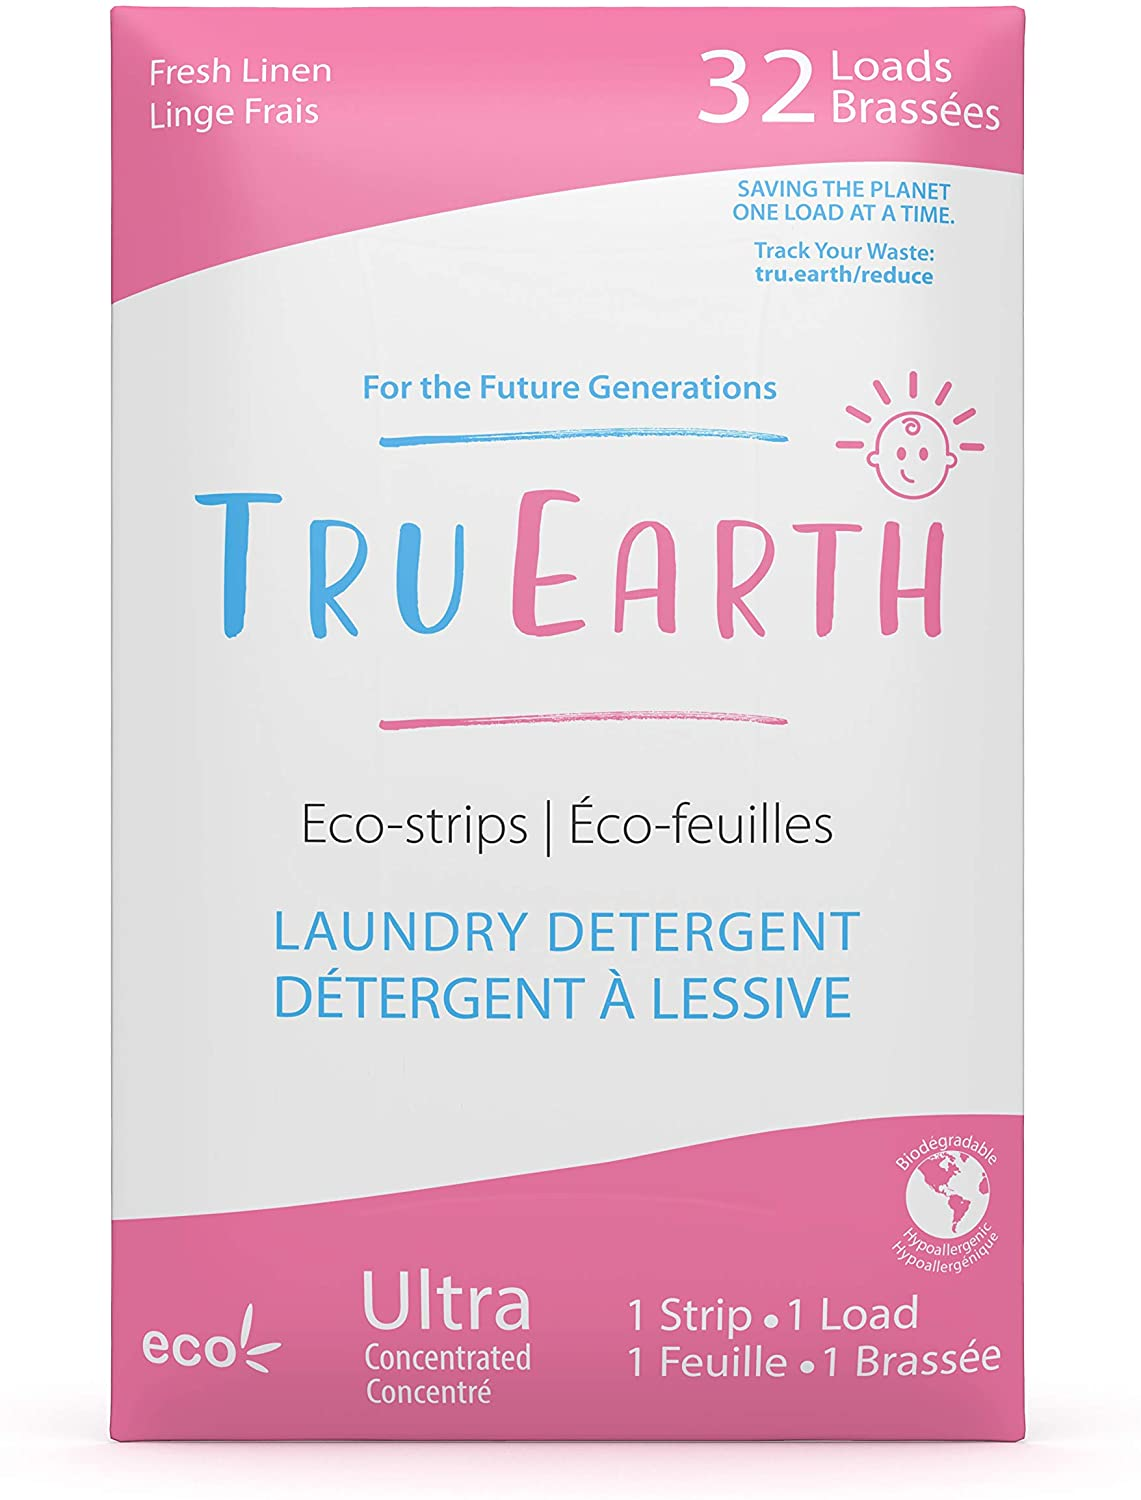 Tru Earth Eco-Strips Baby Laundry Detergent (32 Loads) - Eco-friendly Ultra Concentrated Hypoallergenic Compostable & Biodegradable Plastic-Free Laundry Detergent Sheets for Sensitive Skin